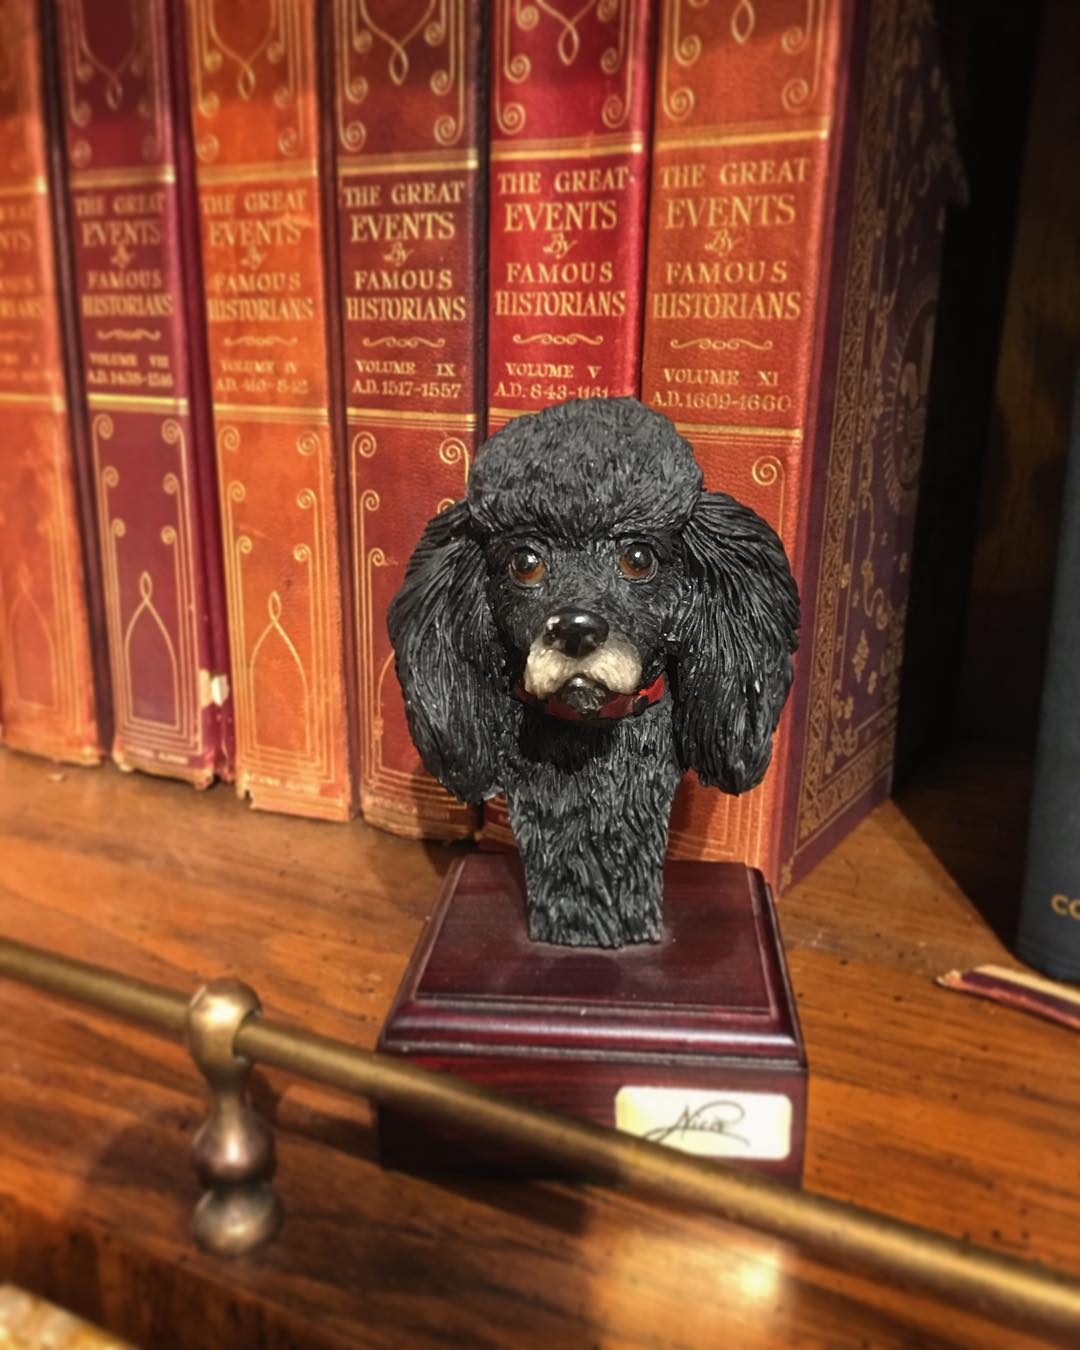 it-took-a-lot-of-willpower-to-not-purchase-this-creepy-thing-haha-creepy-overpriced-poodle-bust-sculpture-art-at-some-wild-vintage--antiques-commune-out-in-santabarbara-i-do-regret-passing-up-on-some-awesome-silver-assorted-ivy-league-troph_23668.jpg